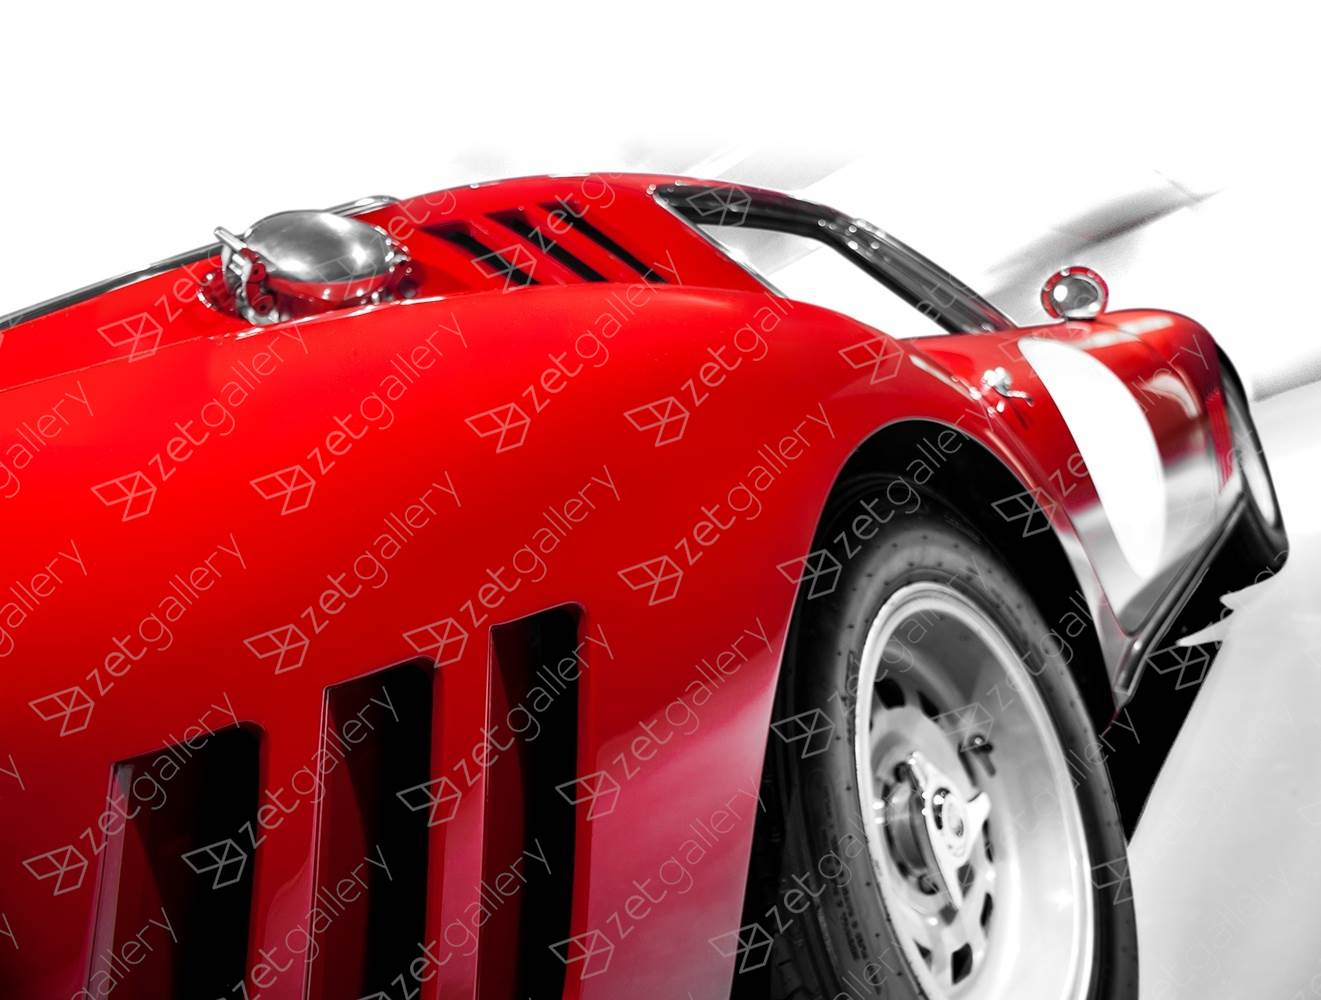 Ferrari GTB Competizione 02, original Avant-Garde Digital Photography by Yggdrasil Art